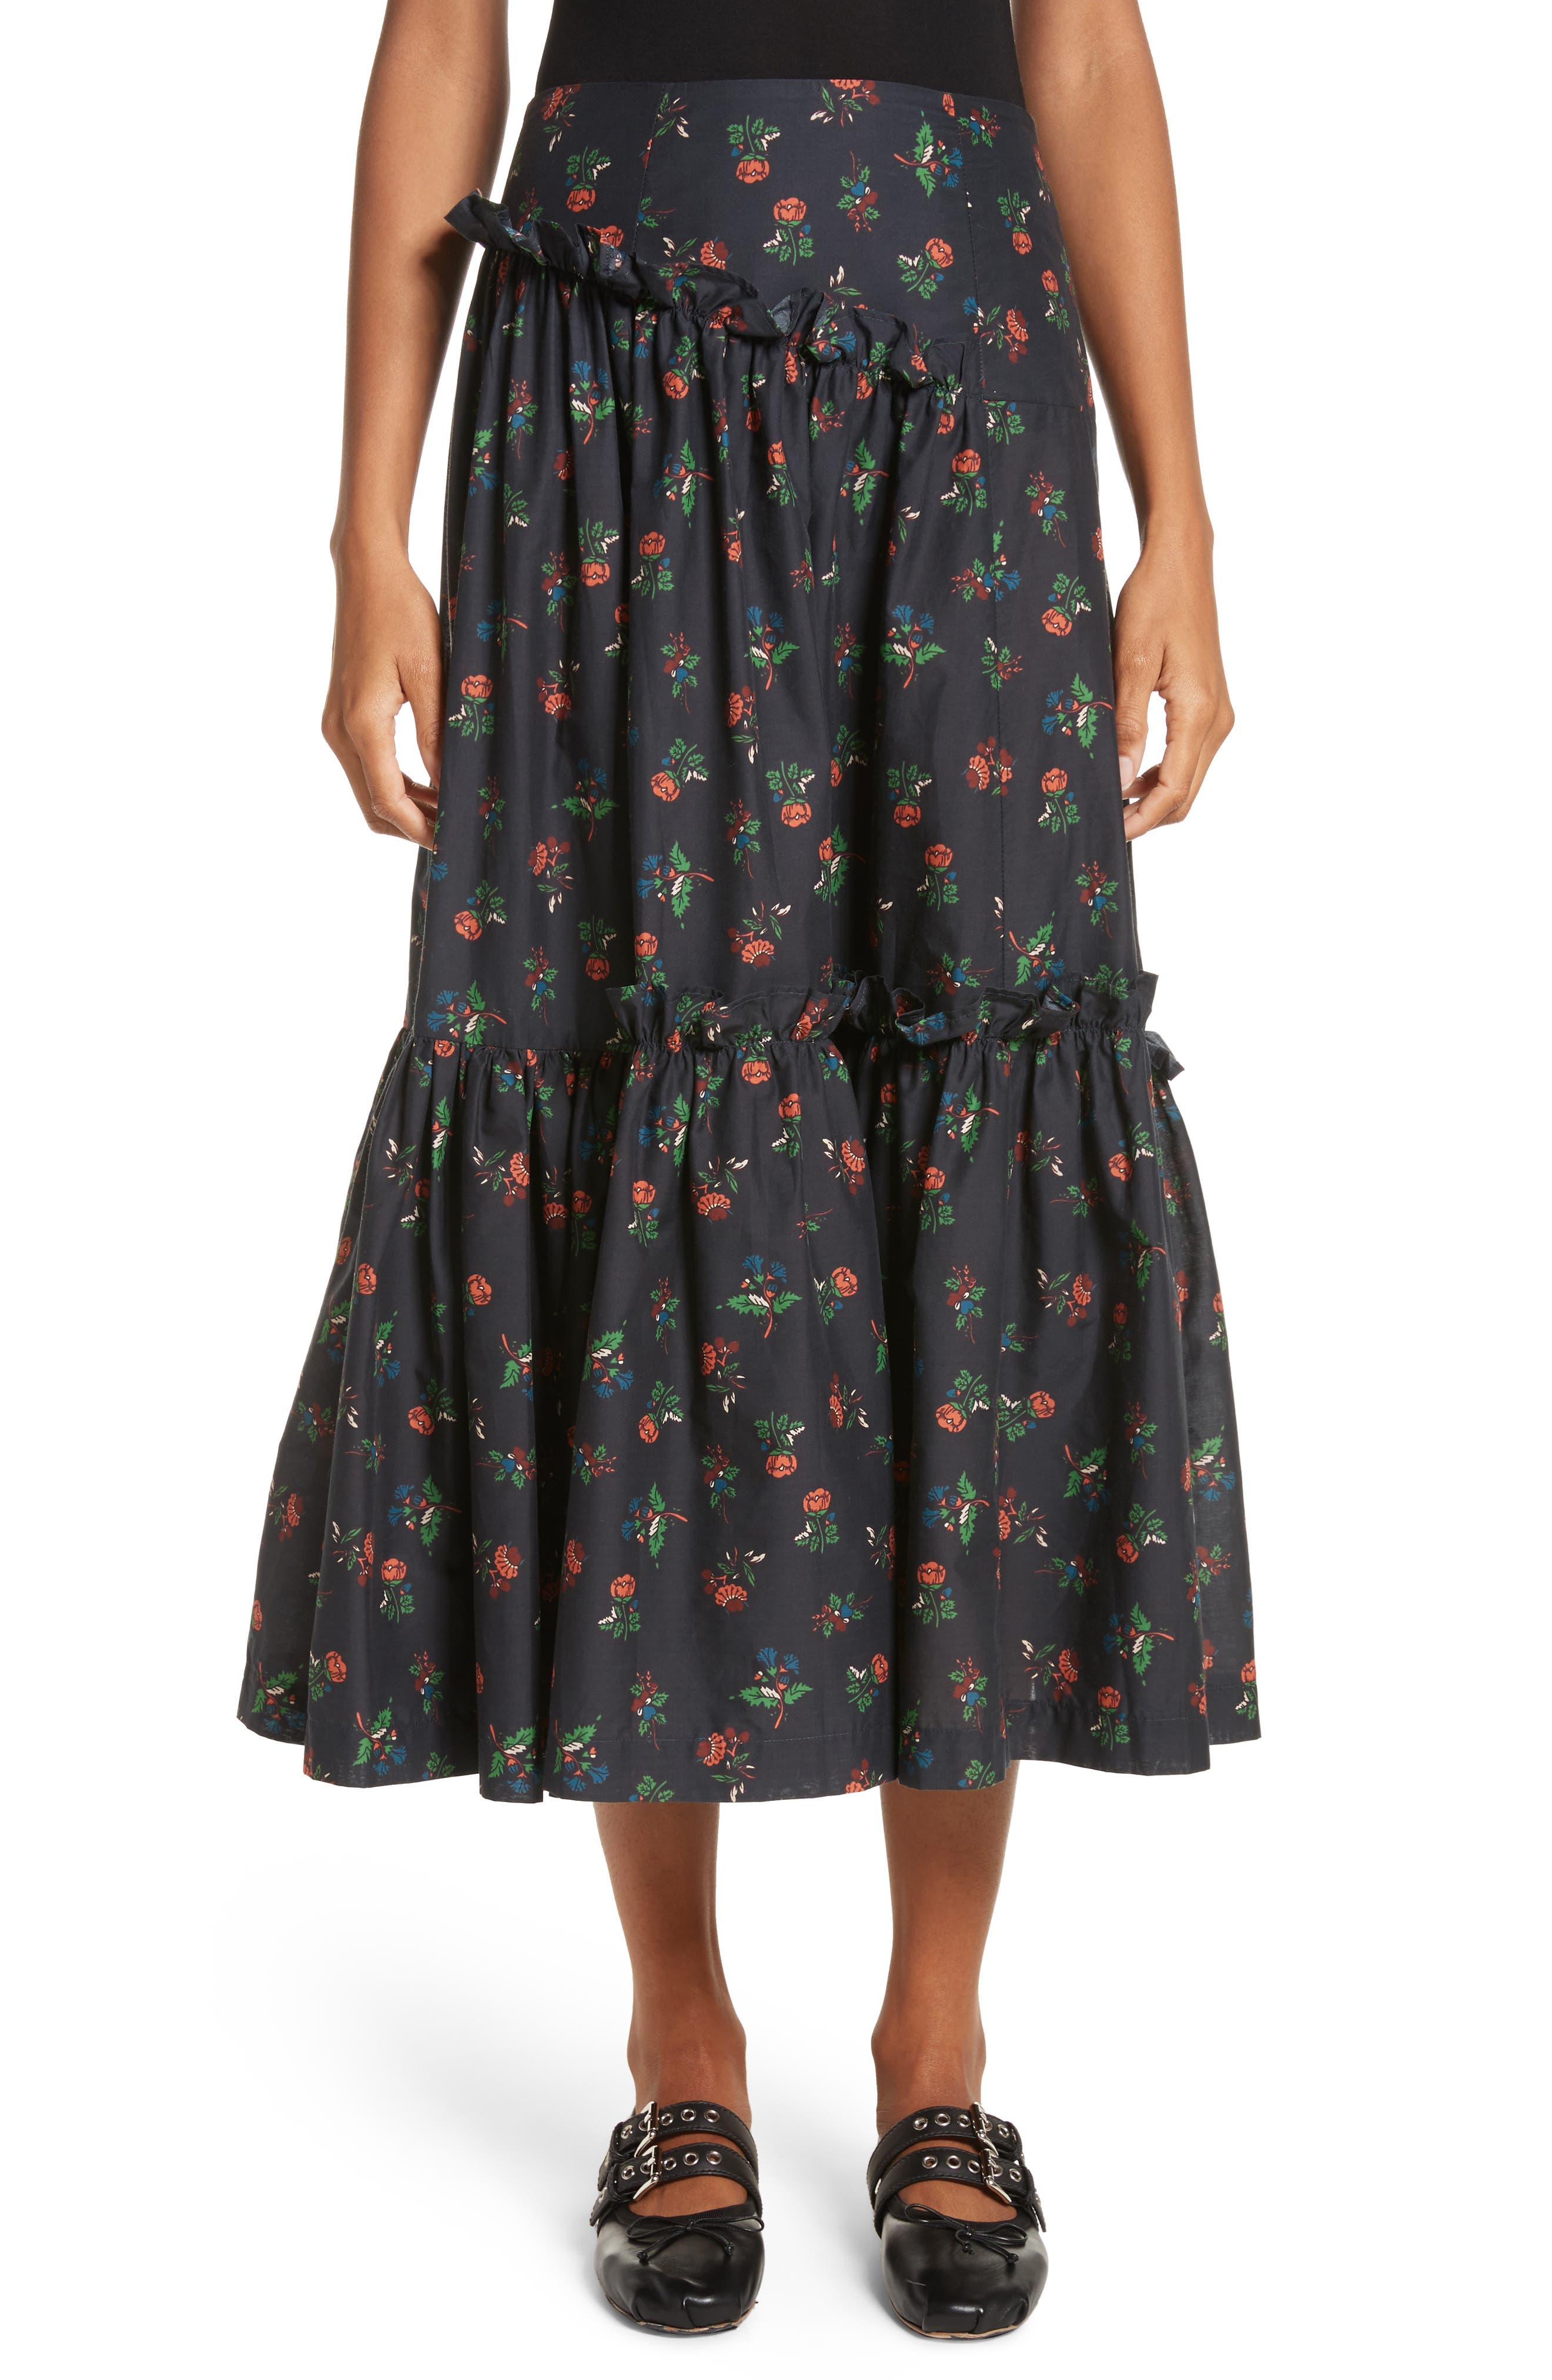 Molly Goddard Tracey Floral Skirt